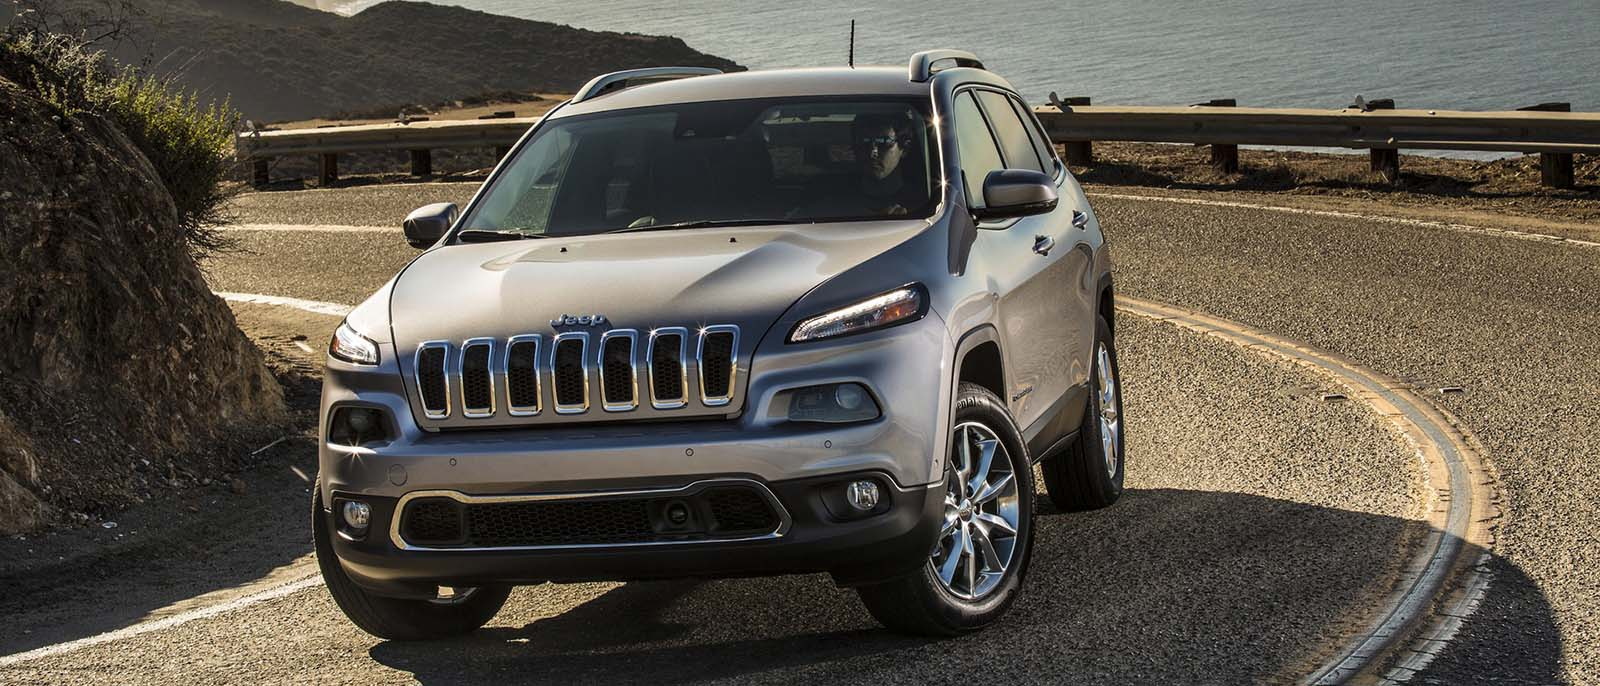 2017 Jeep Cherokee Grill